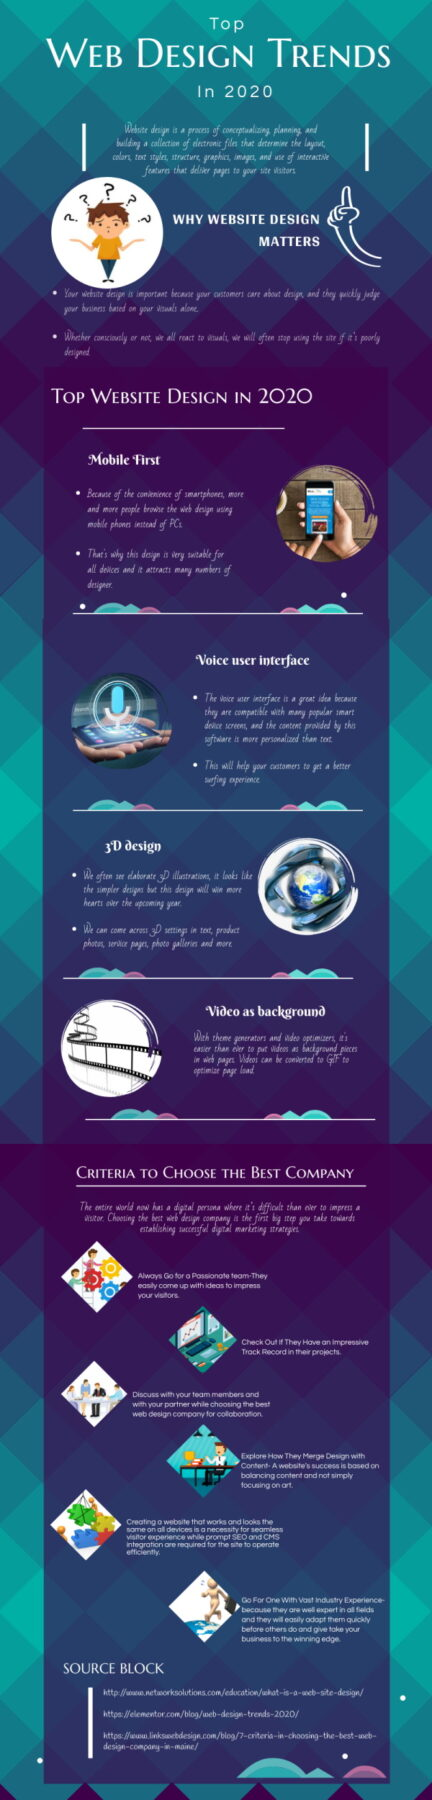 top trends and tips for effective website design 2020 infographic